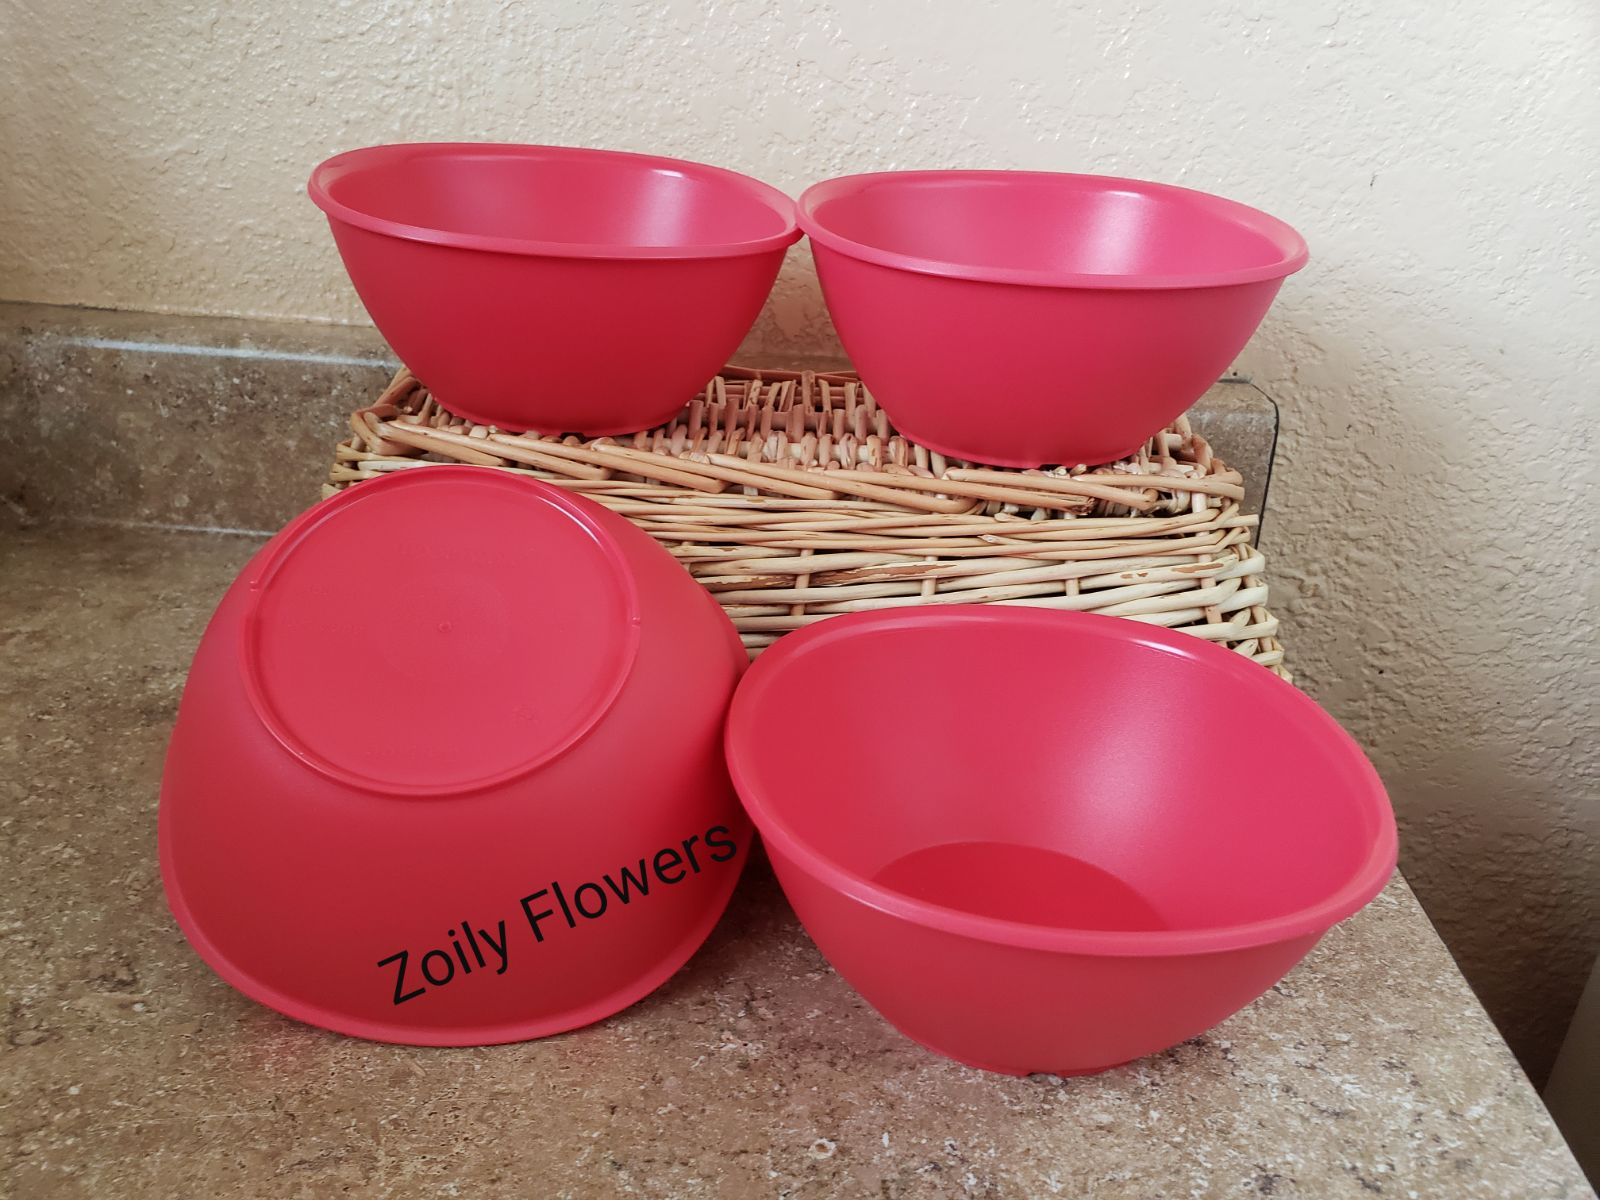 Tupperware bowls 4 containers